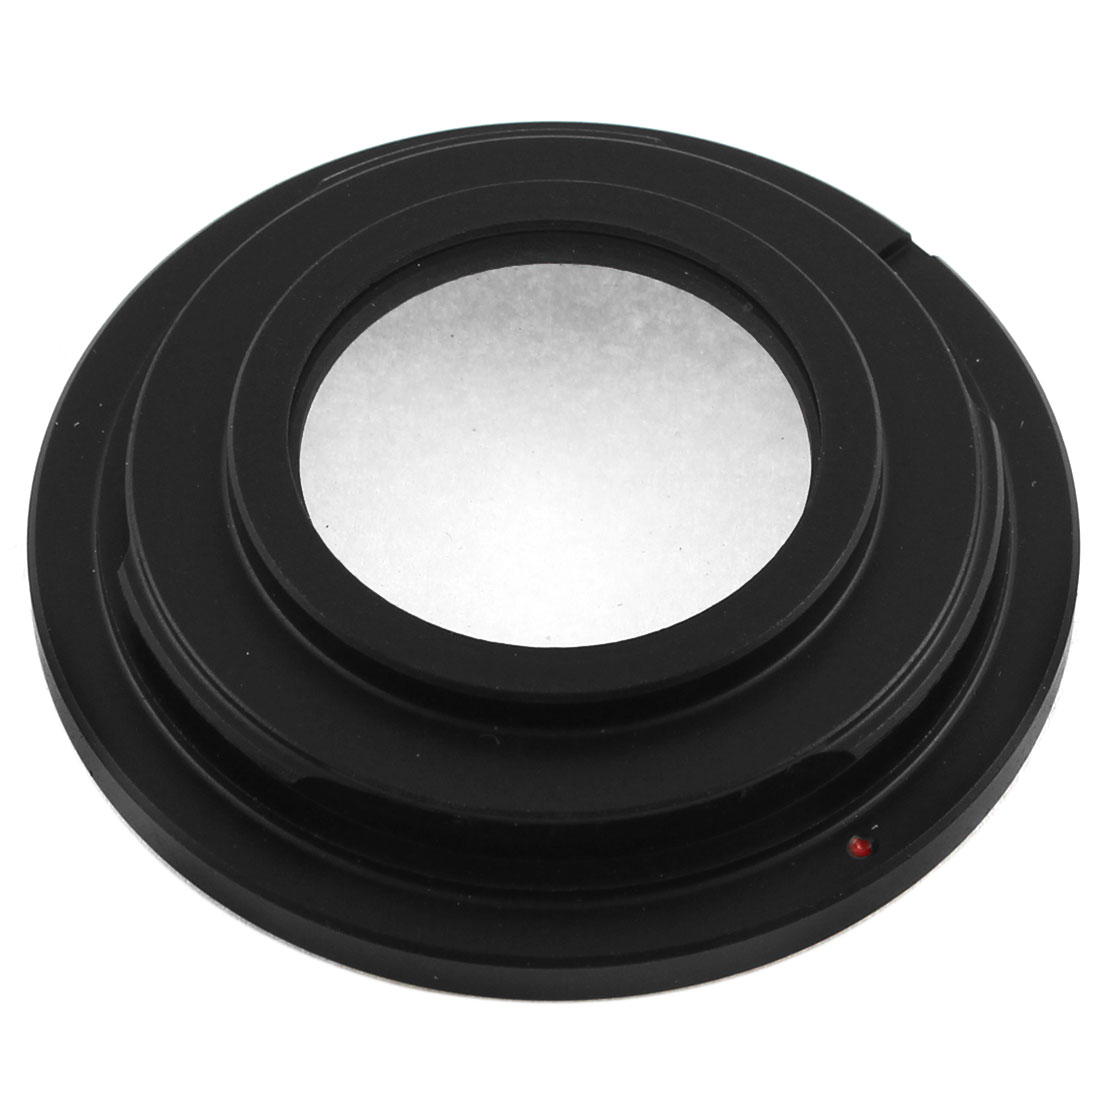 M42 Screw Lens Adapter Ring to Nikon DSLR Mount Camera w Focus Infinity Glass